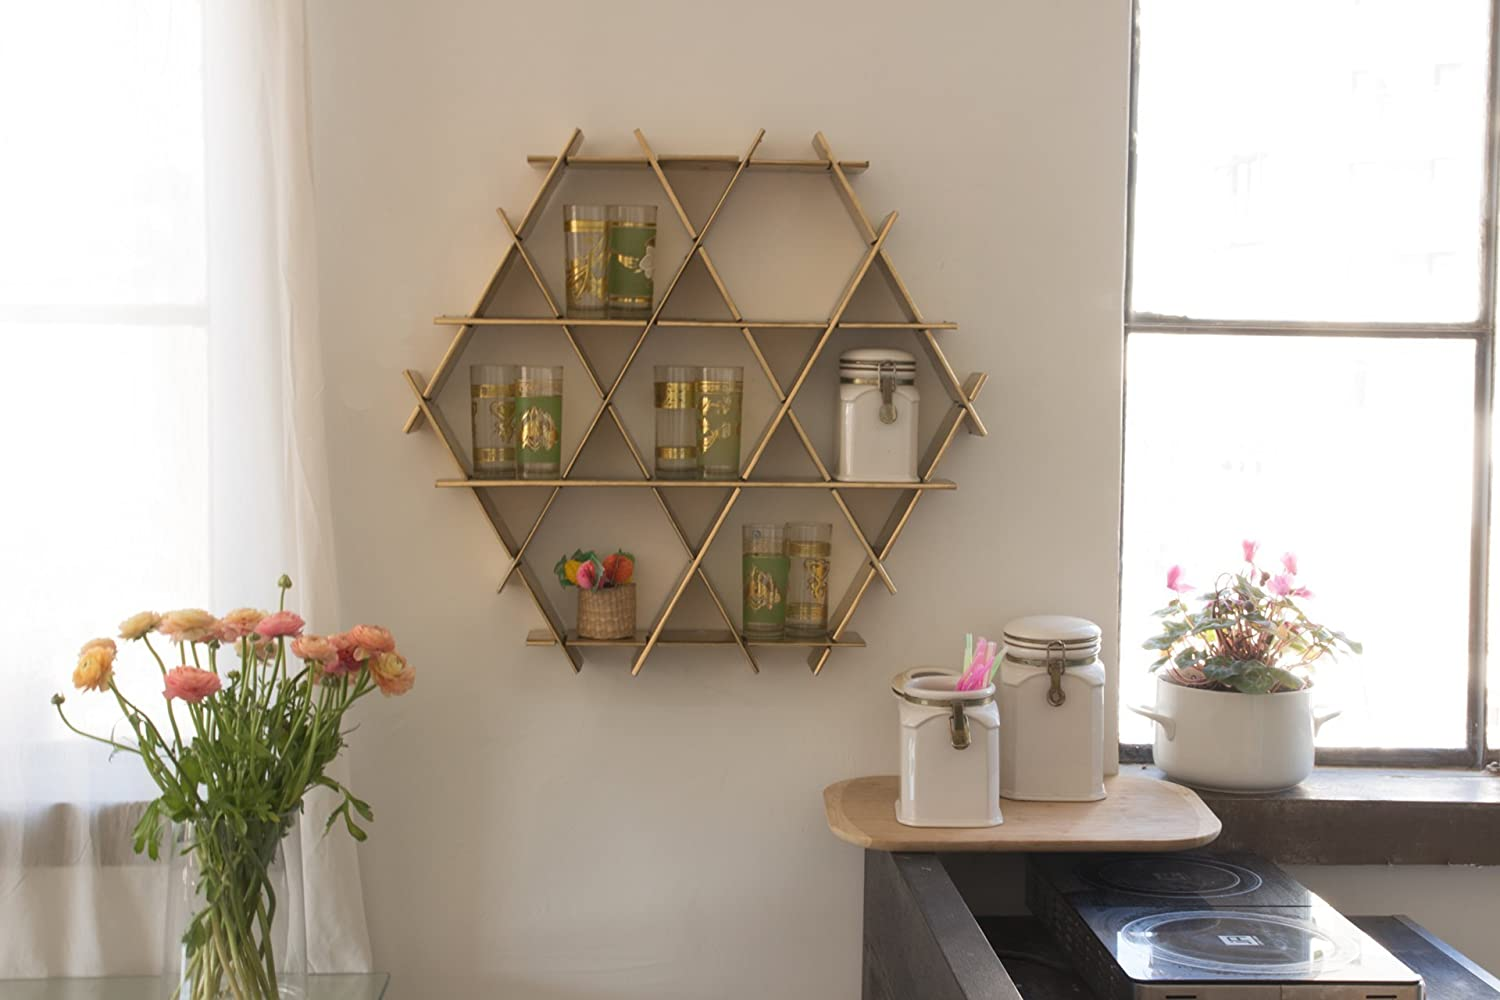 Bon Amazon.com: Kitchen Wall Shelf, Organizer, Coffee Cup Holder, Kitchen  Display Storage   Gold Cardboard Medium Ruche Shelves: Handmade